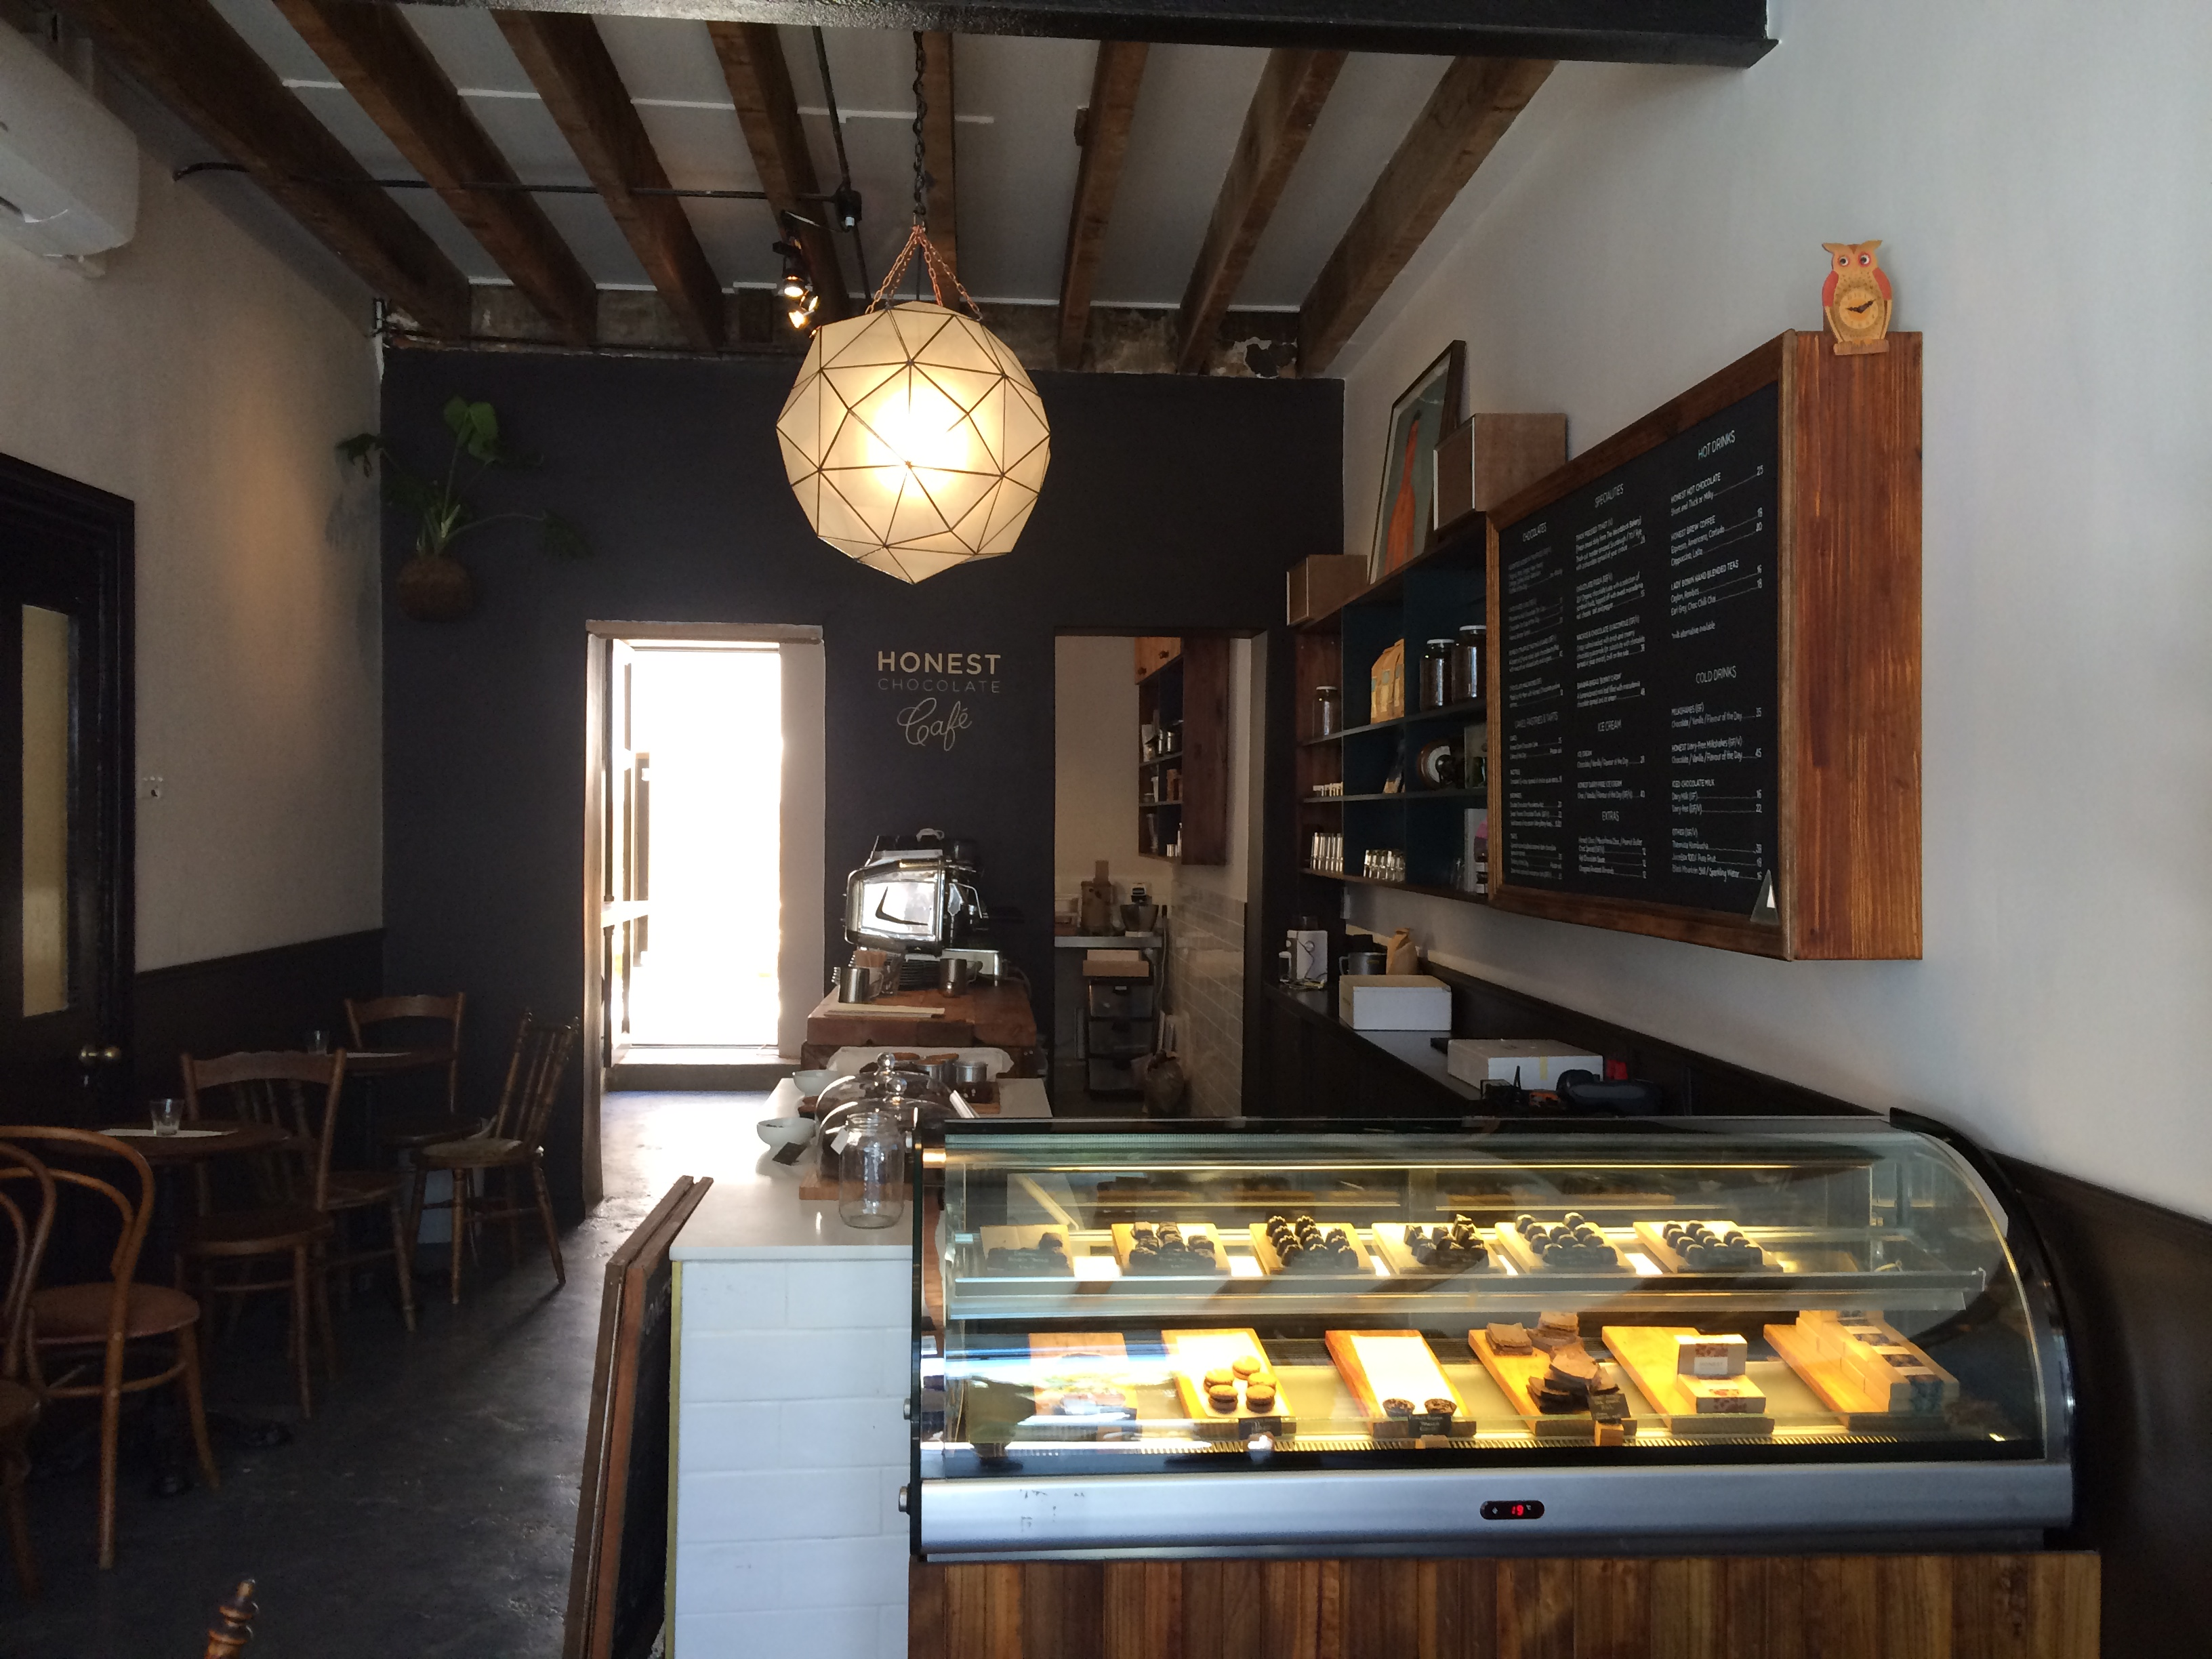 Chocolate haven and heaven opens at Honest Chocolate Café on Wale ...